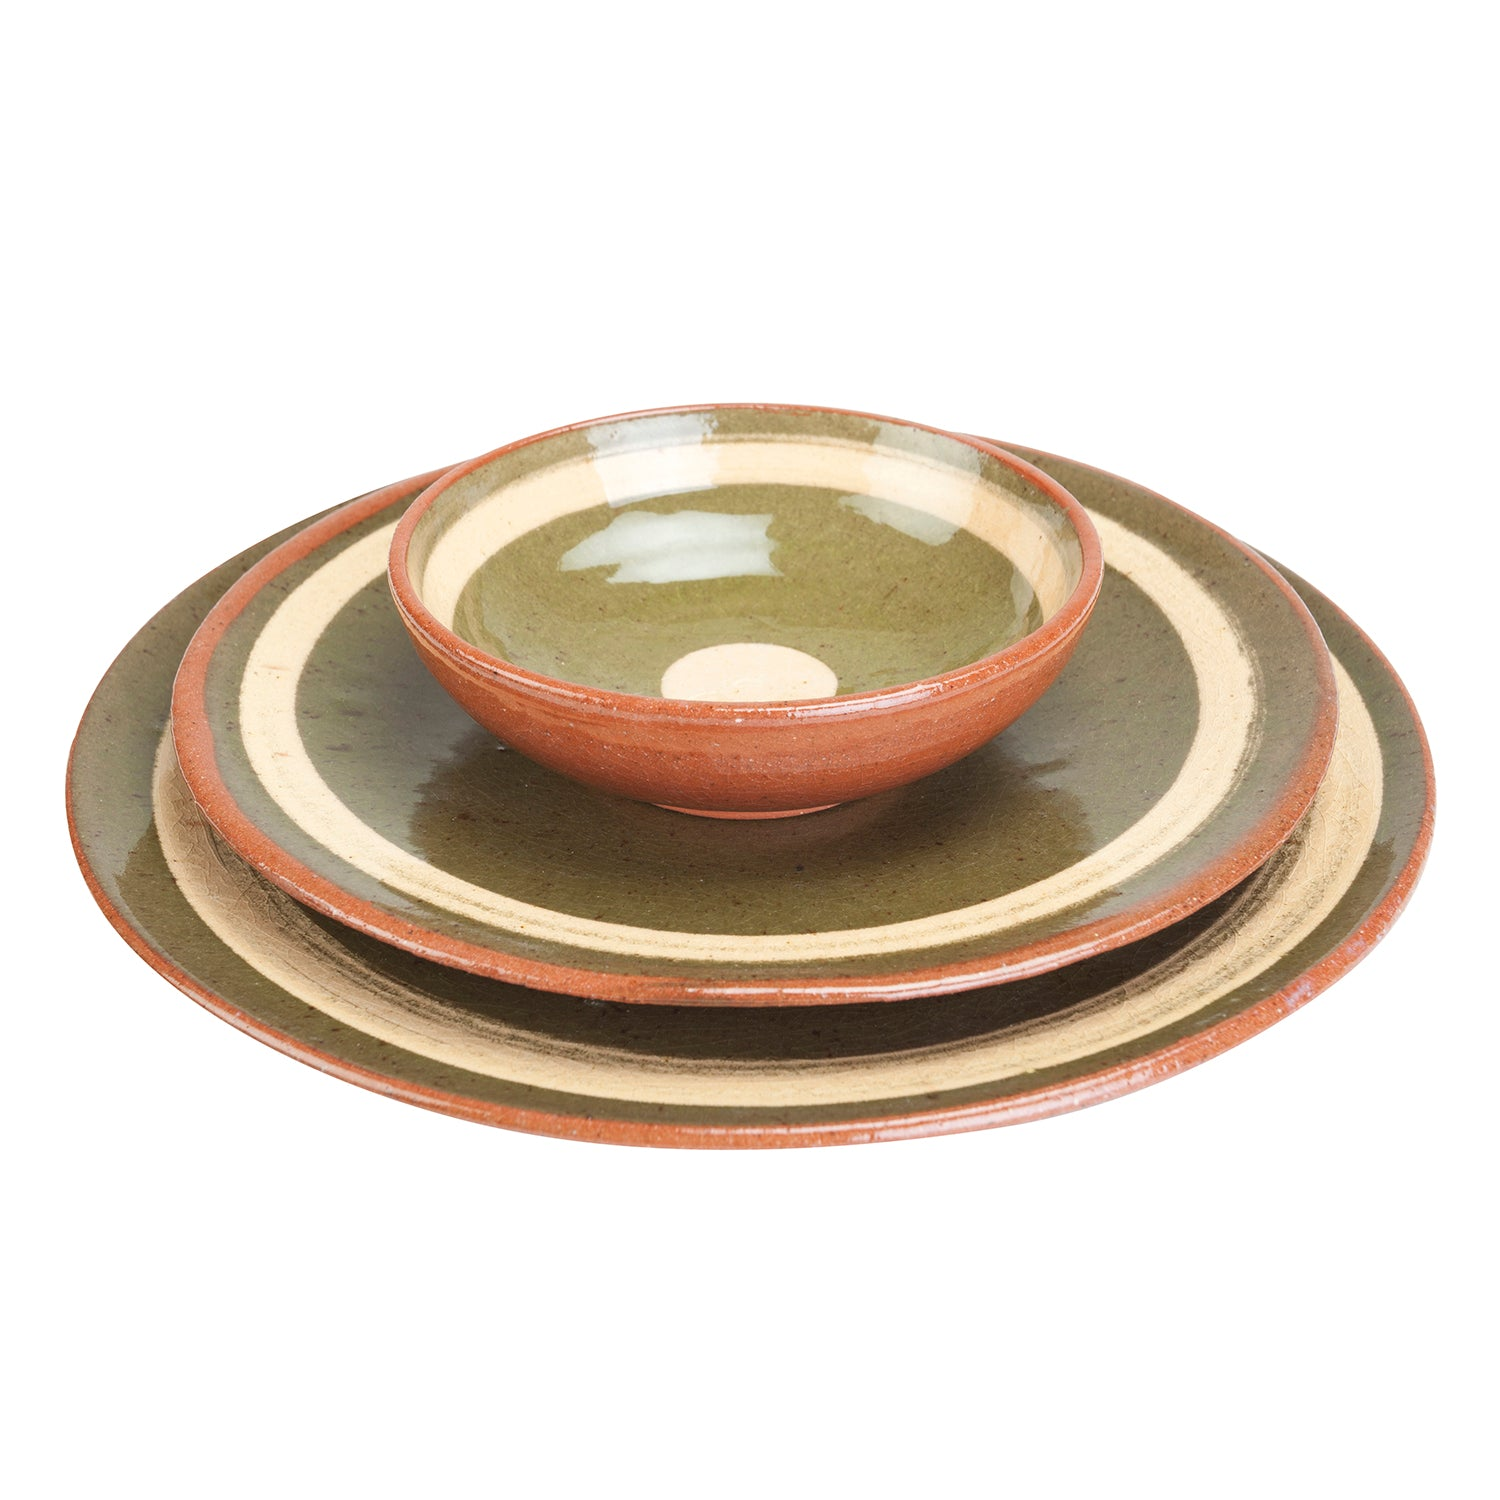 Terracotta Dinnerware Singles Set